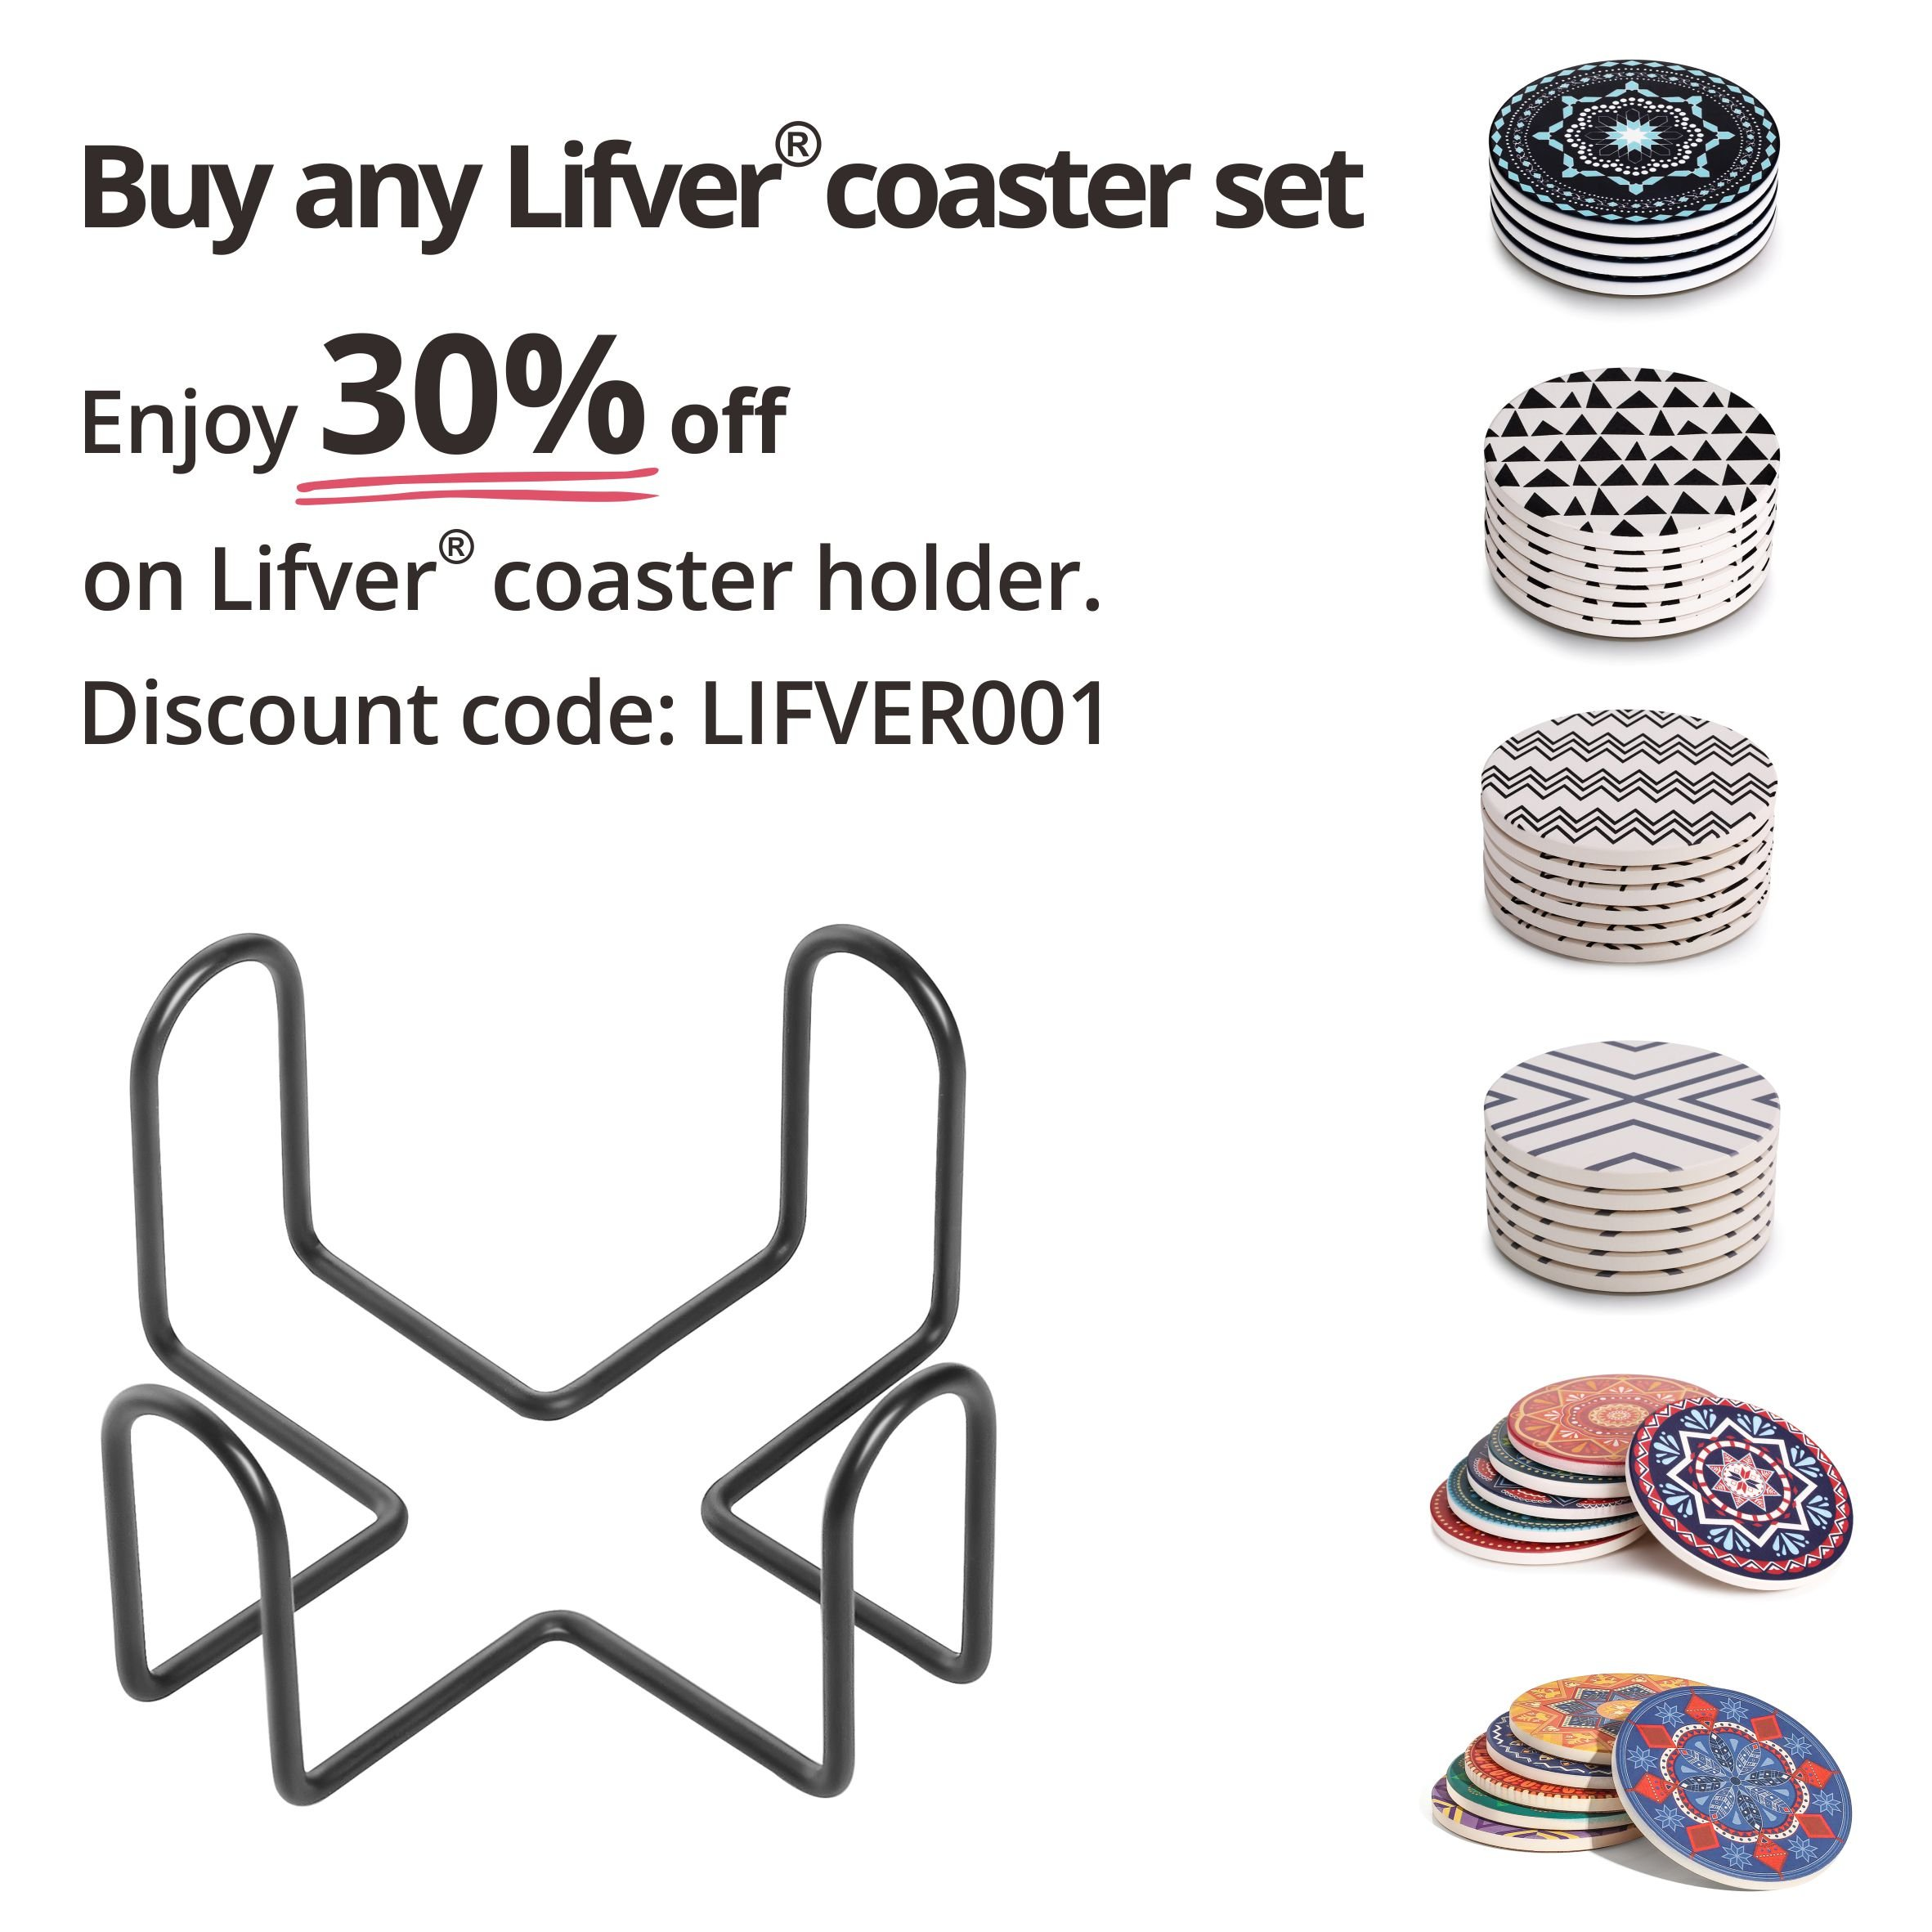 Lifver 4.5 Inch Black Iron Metal Coasters Holder For Both Round and Square Coasters, Hold Up To 7 Lifver Coasters by Lifver (Image #5)